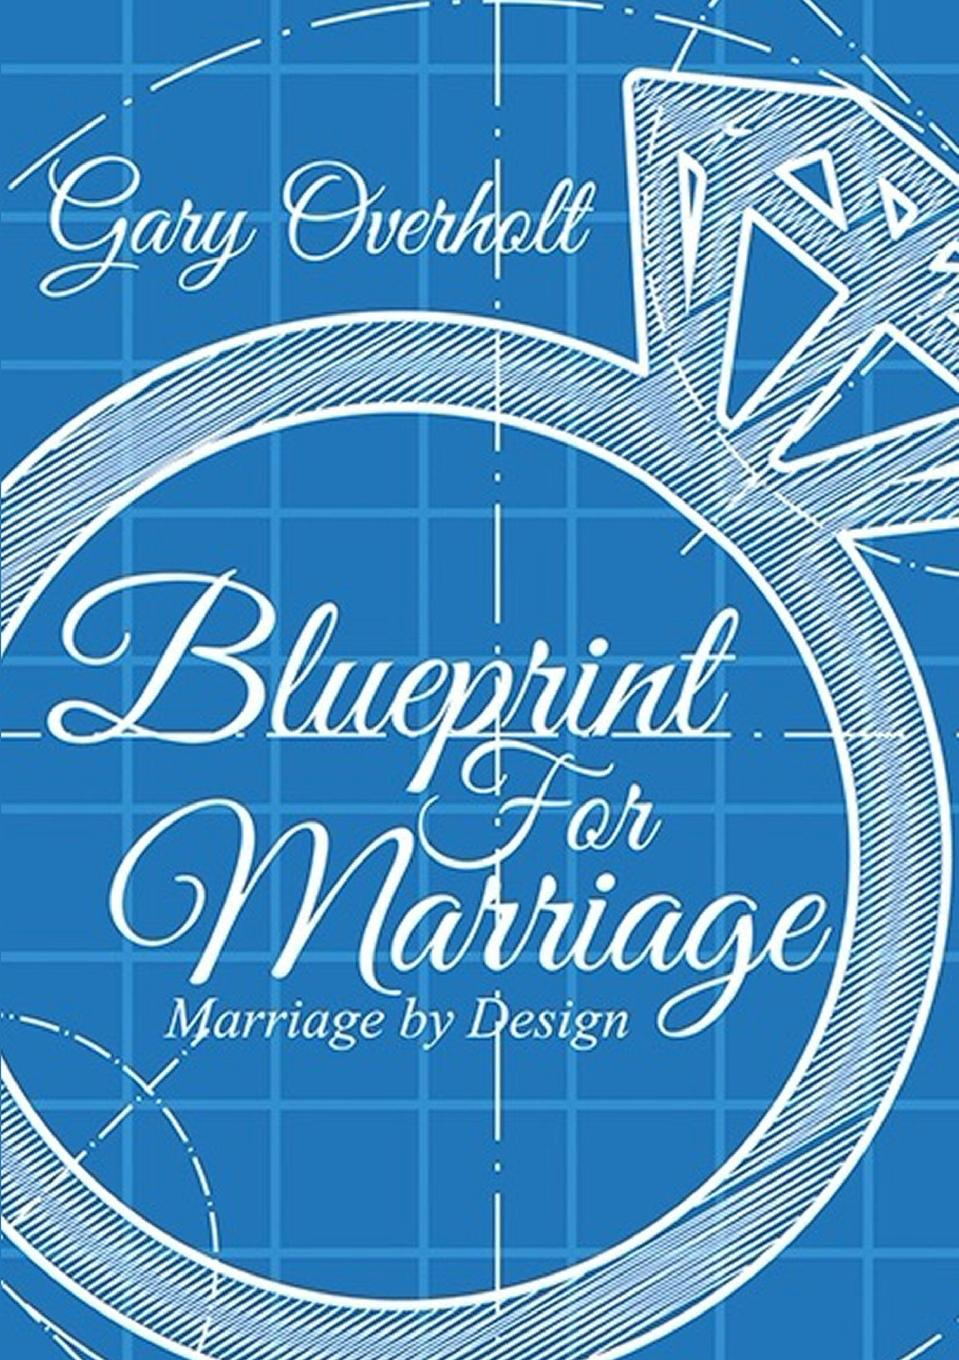 Gary Overholt Blueprint For Marriage. Marriage by Design marriage is for grownups